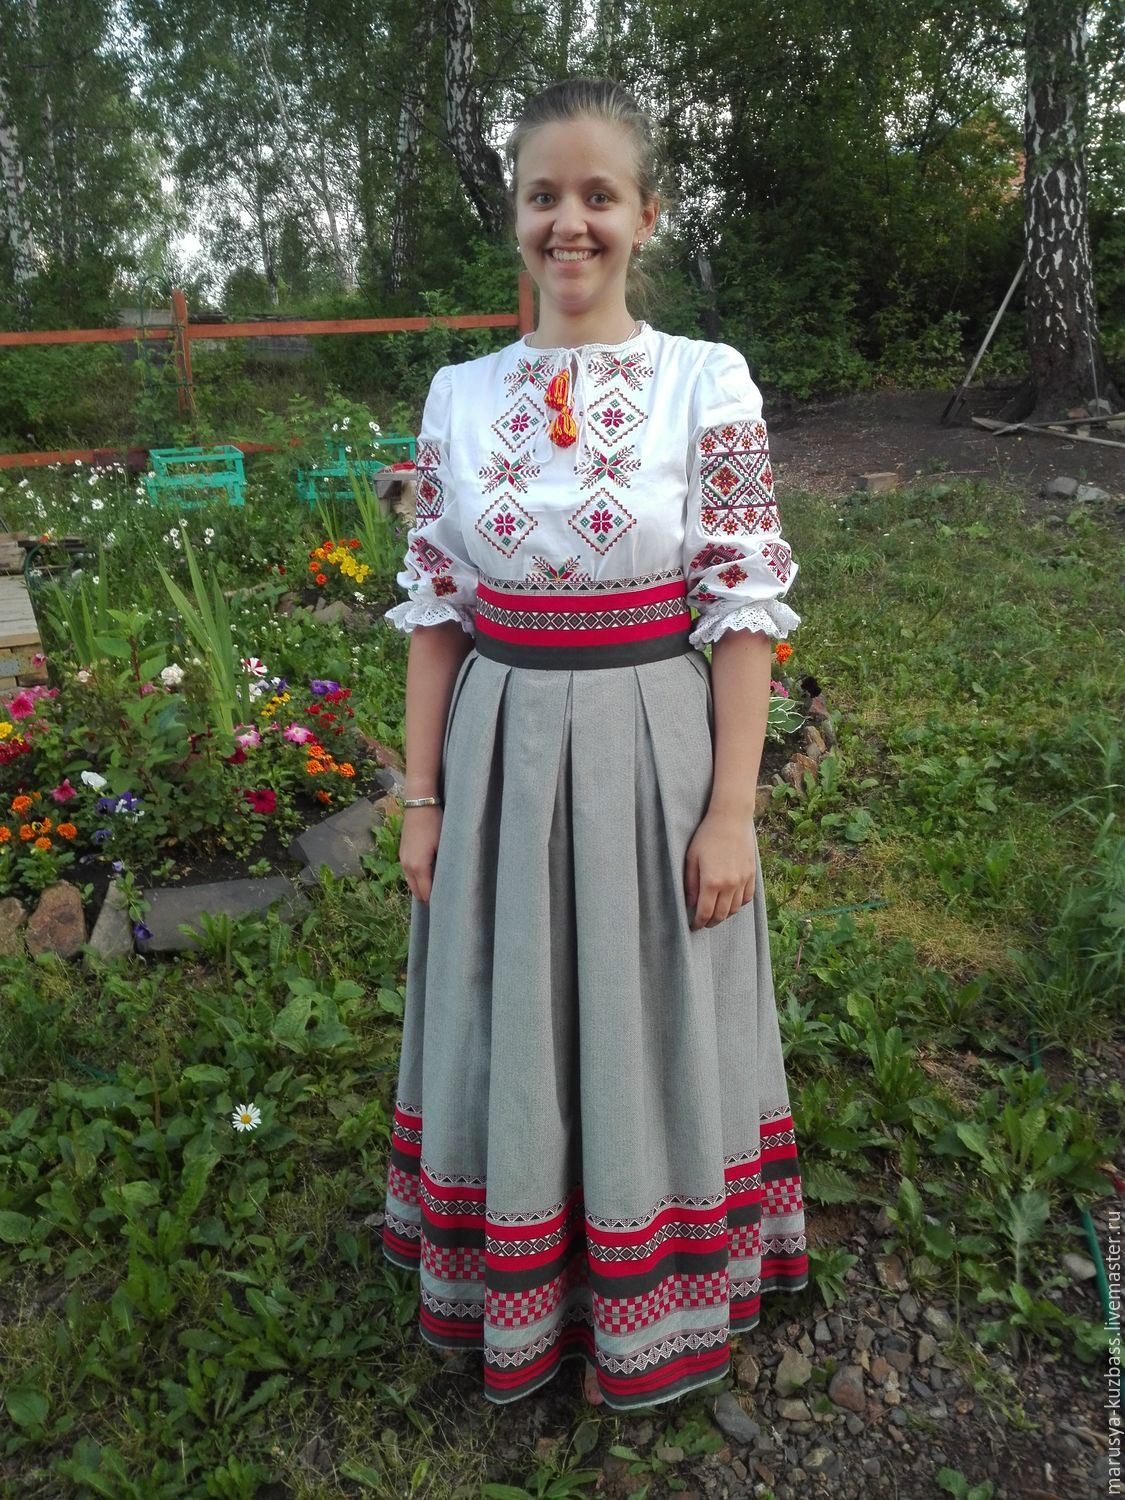 Skirt with traditional ornaments, cotton linen, Skirts, Kemerovo,  Фото №1